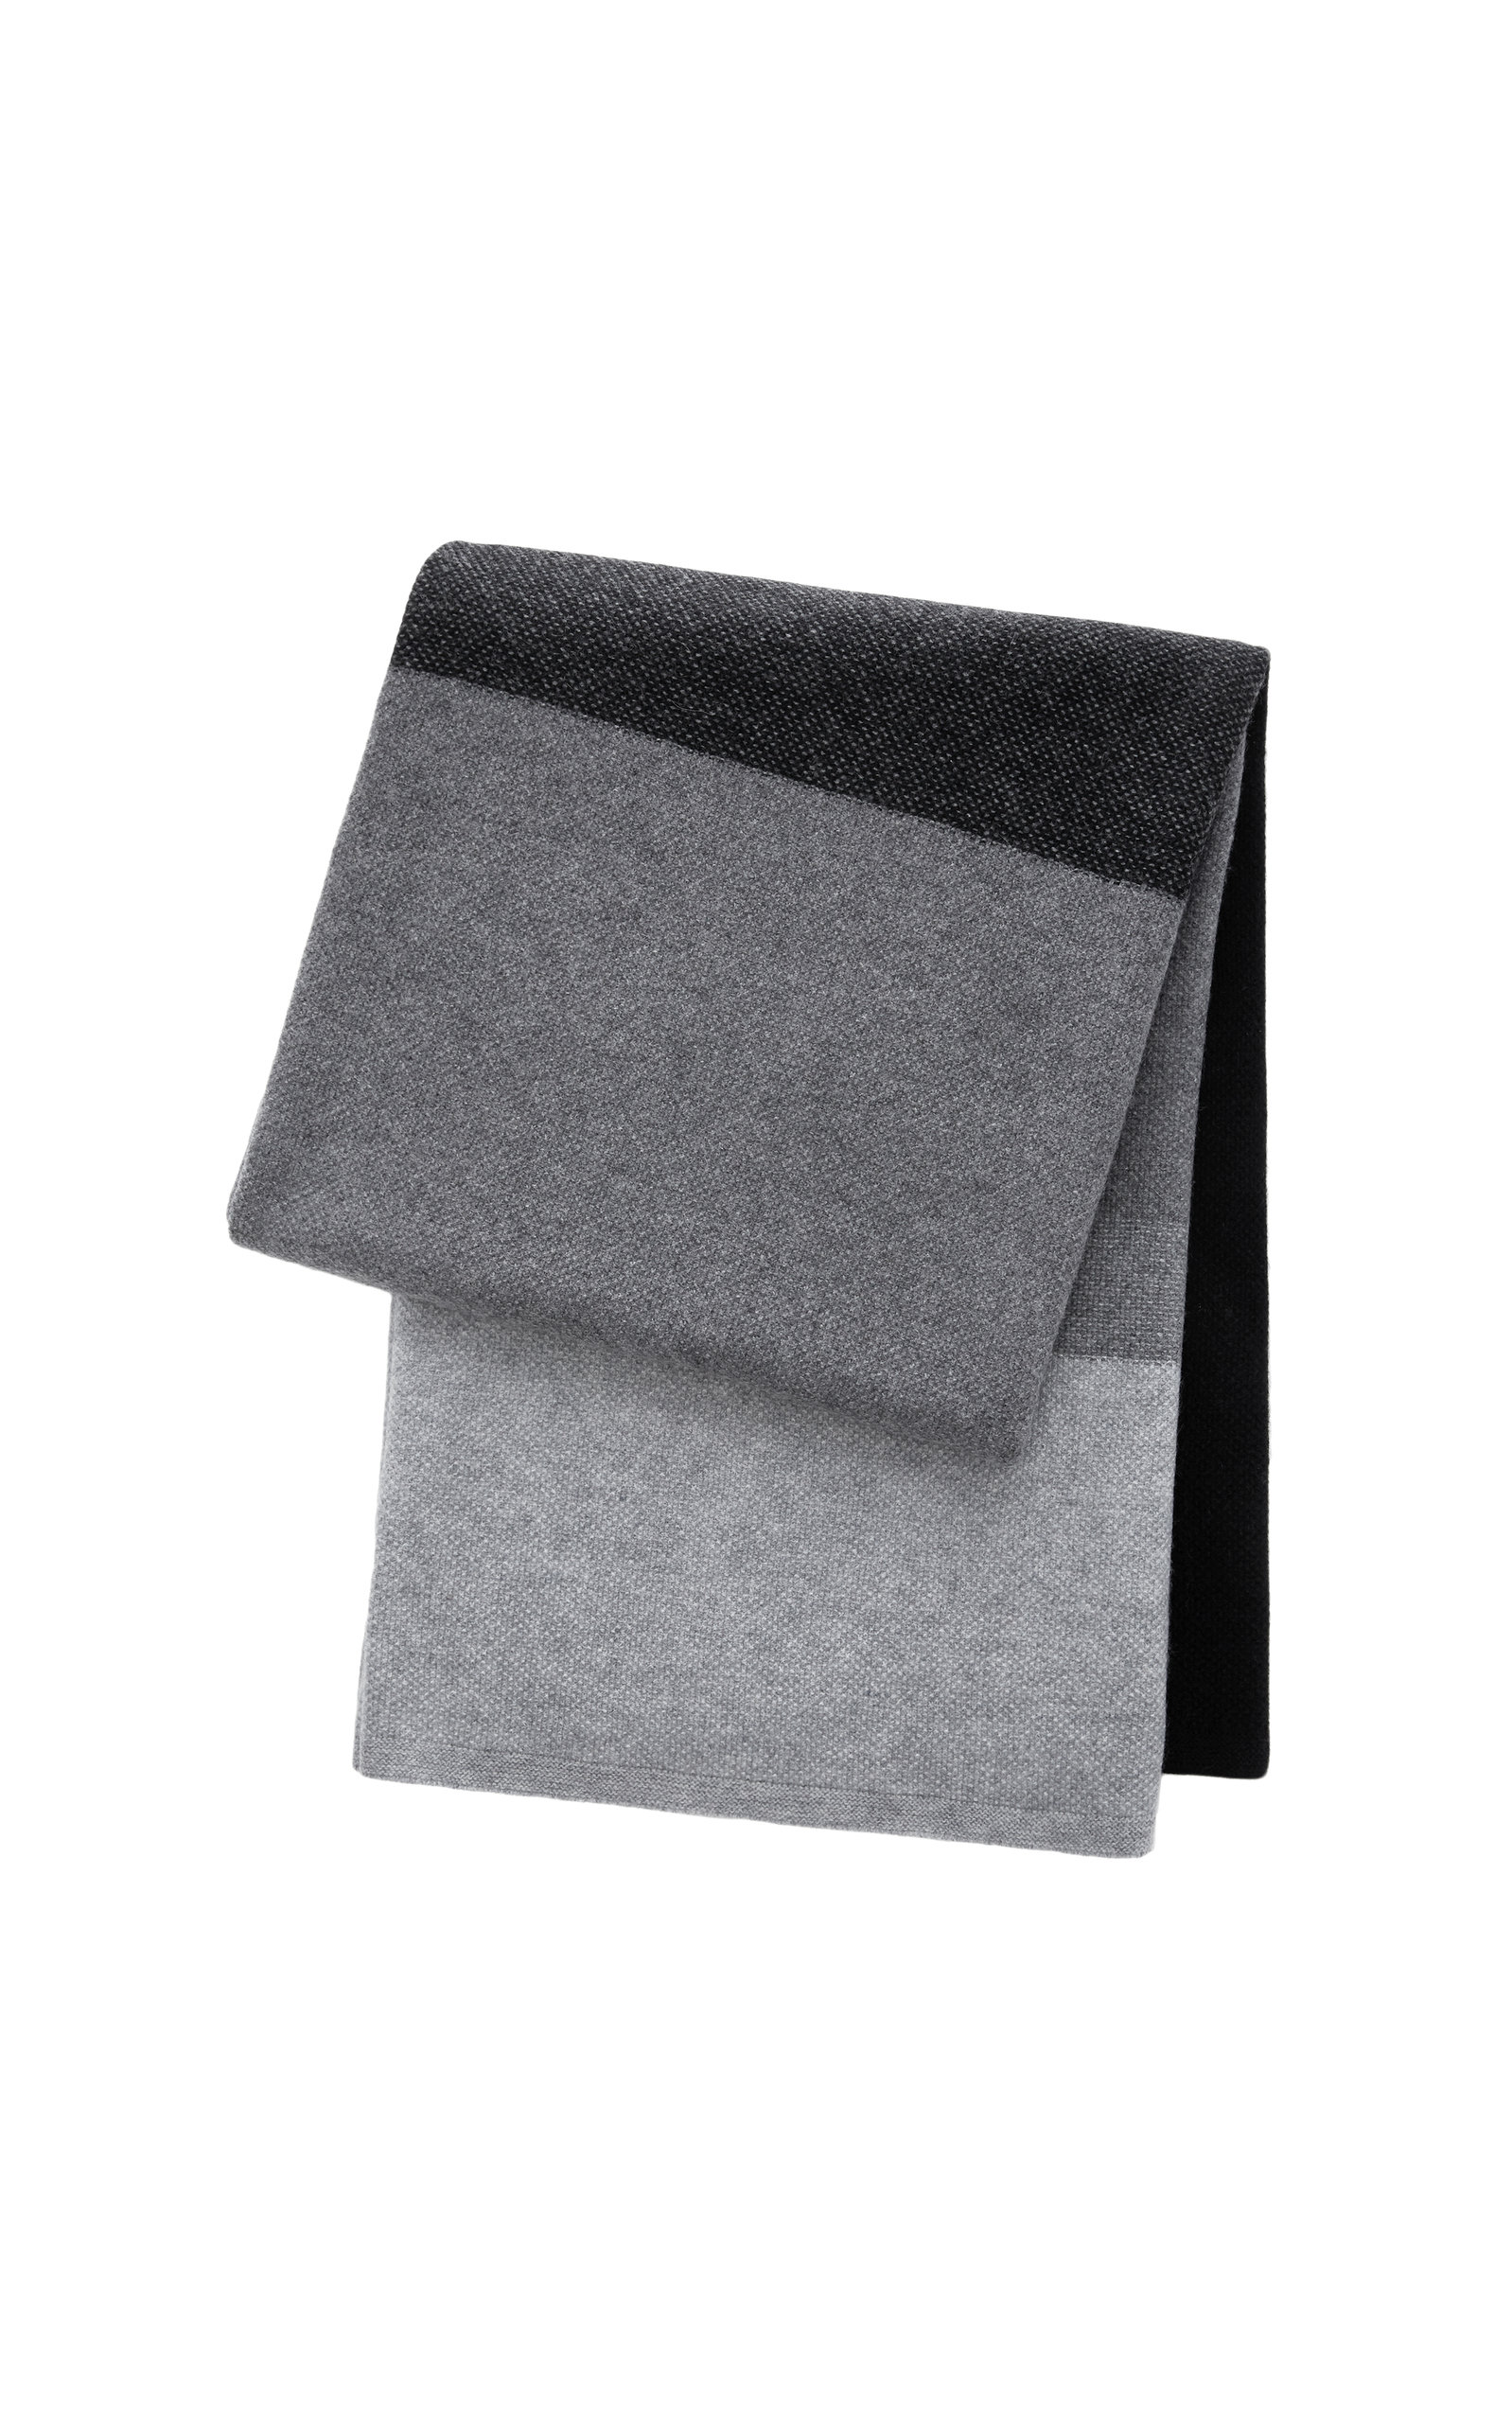 Image of: Saved Nysaved Ny Array Gray And Black Cashmere Blanket Dailymail